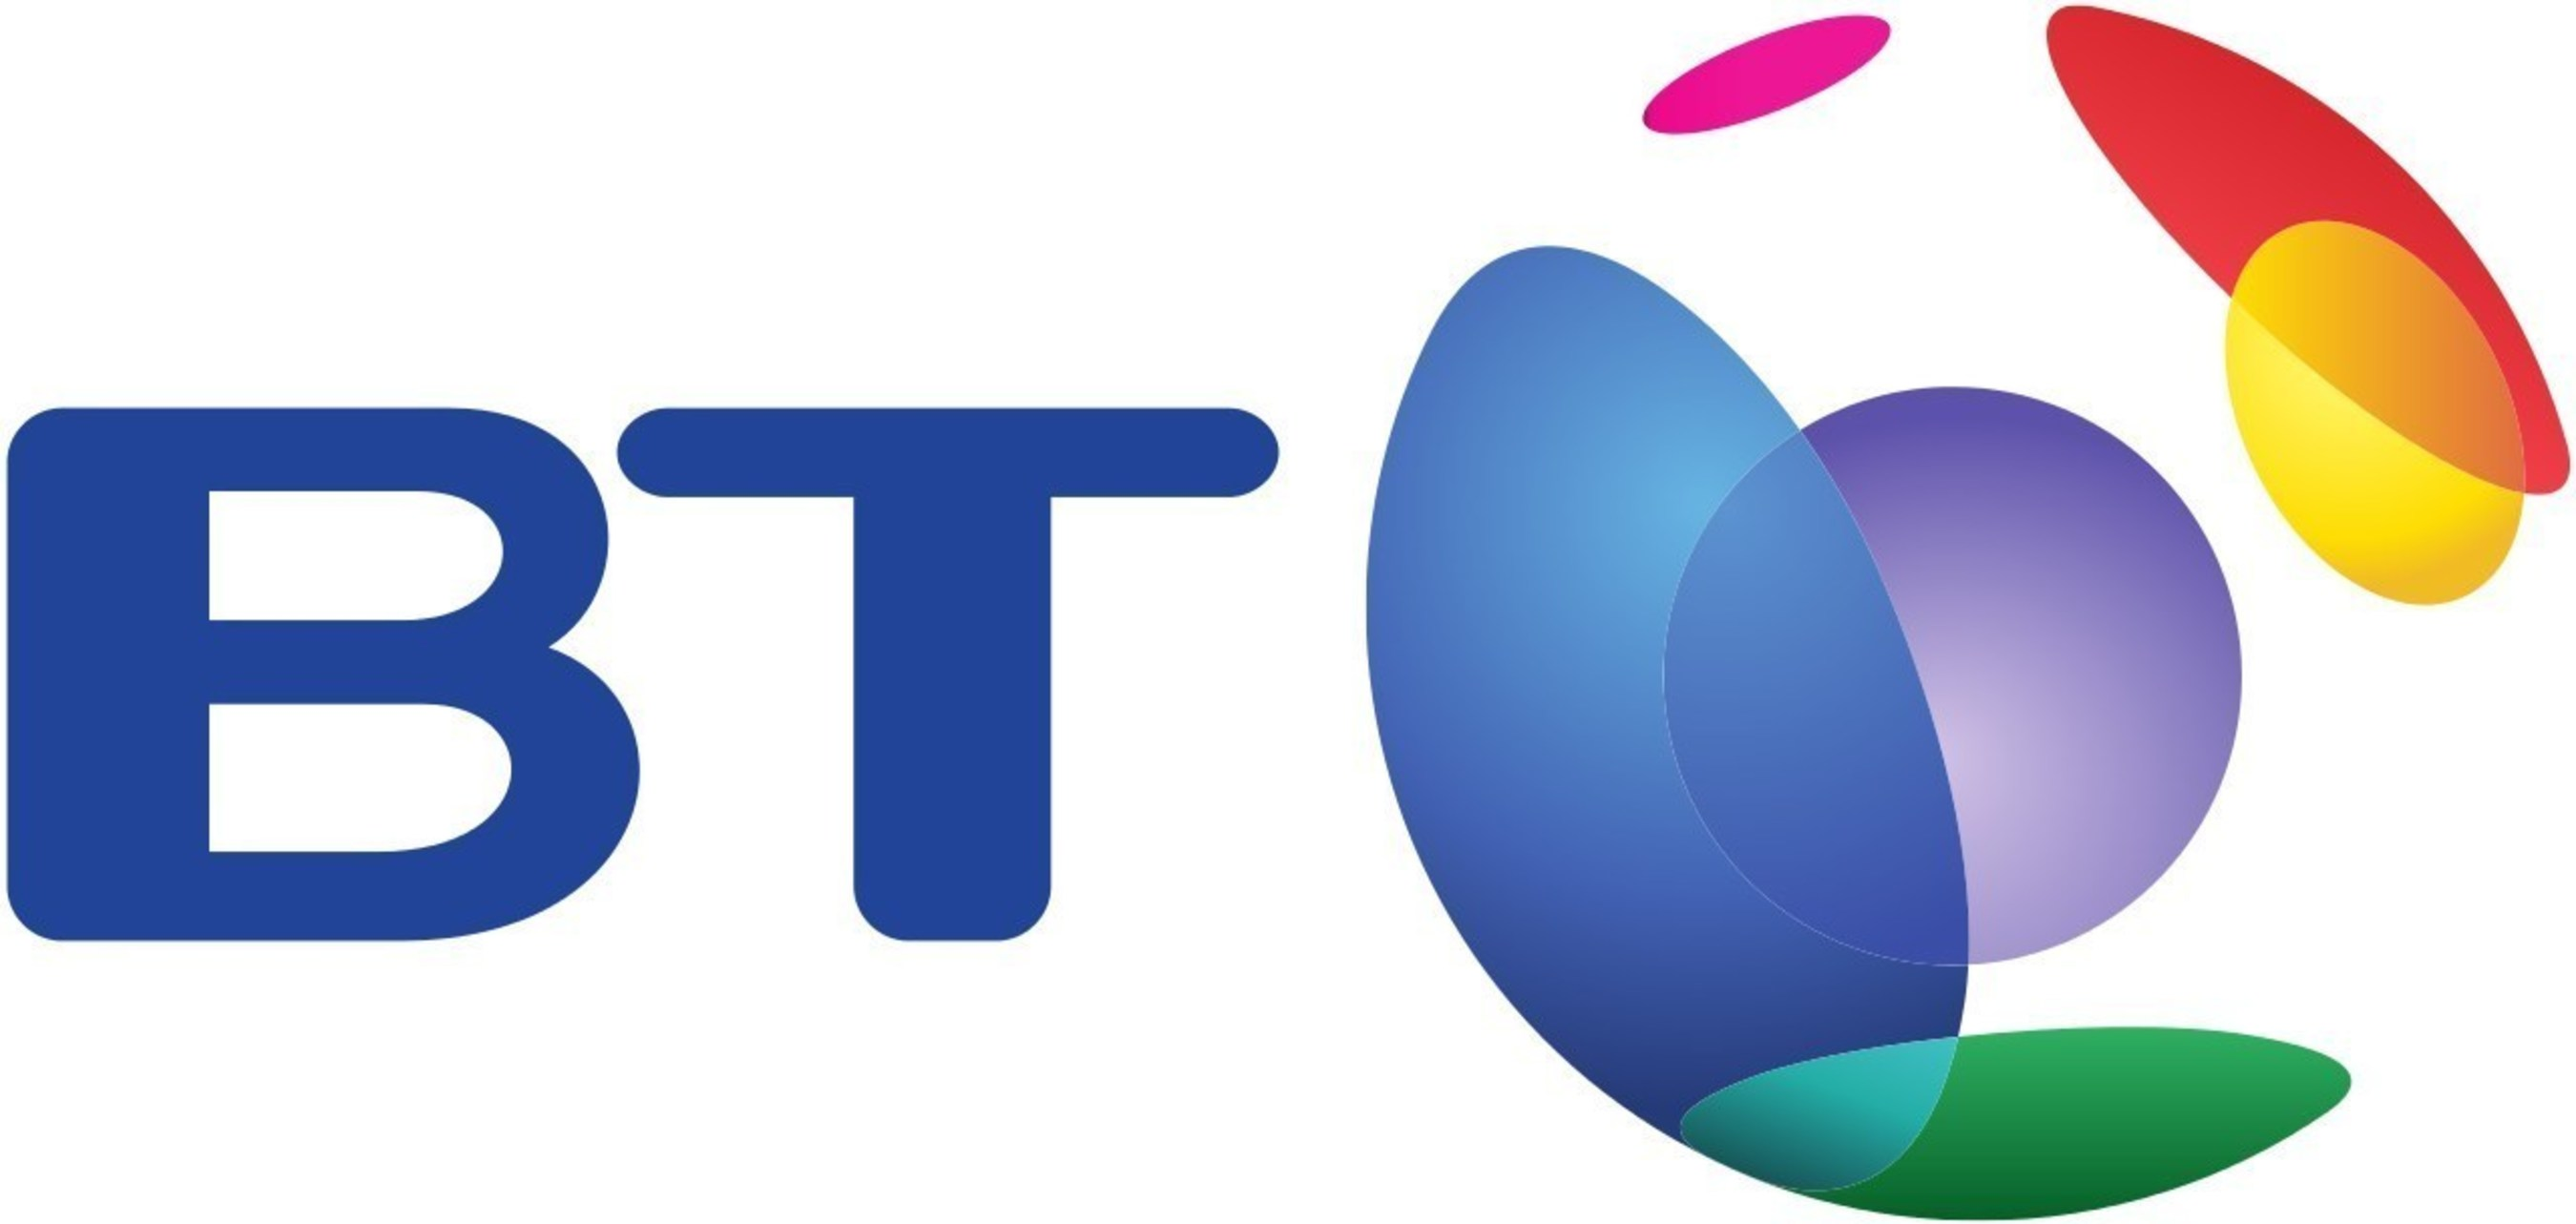 BT Group plc Results For The Second Quarter And Half Year To 30 September 2015